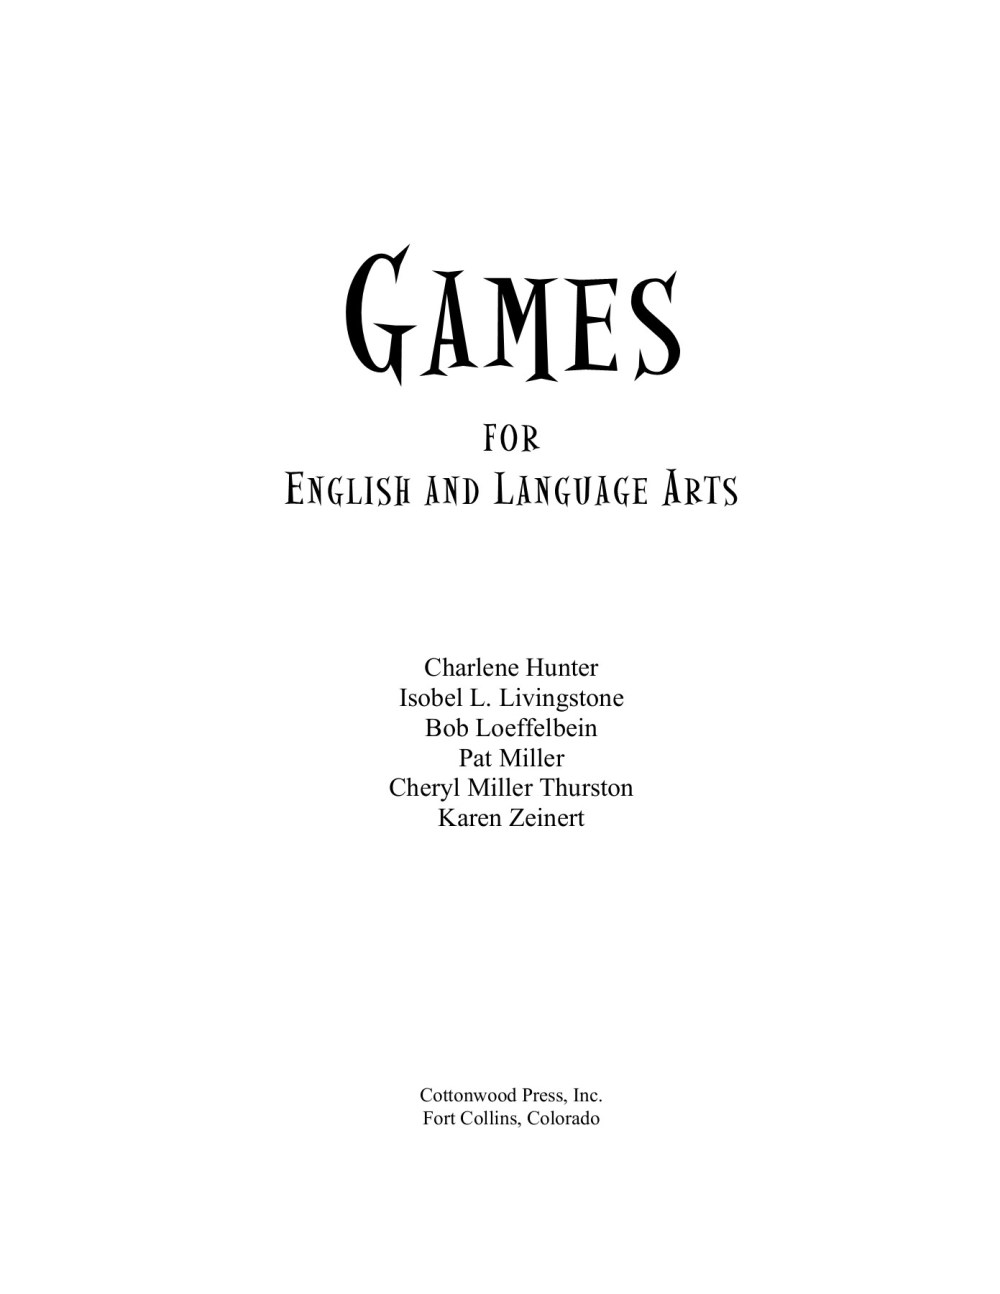 medium resolution of Games for English and Language Arts-Flip eBook Pages 1 - 50  AnyFlip    AnyFlip